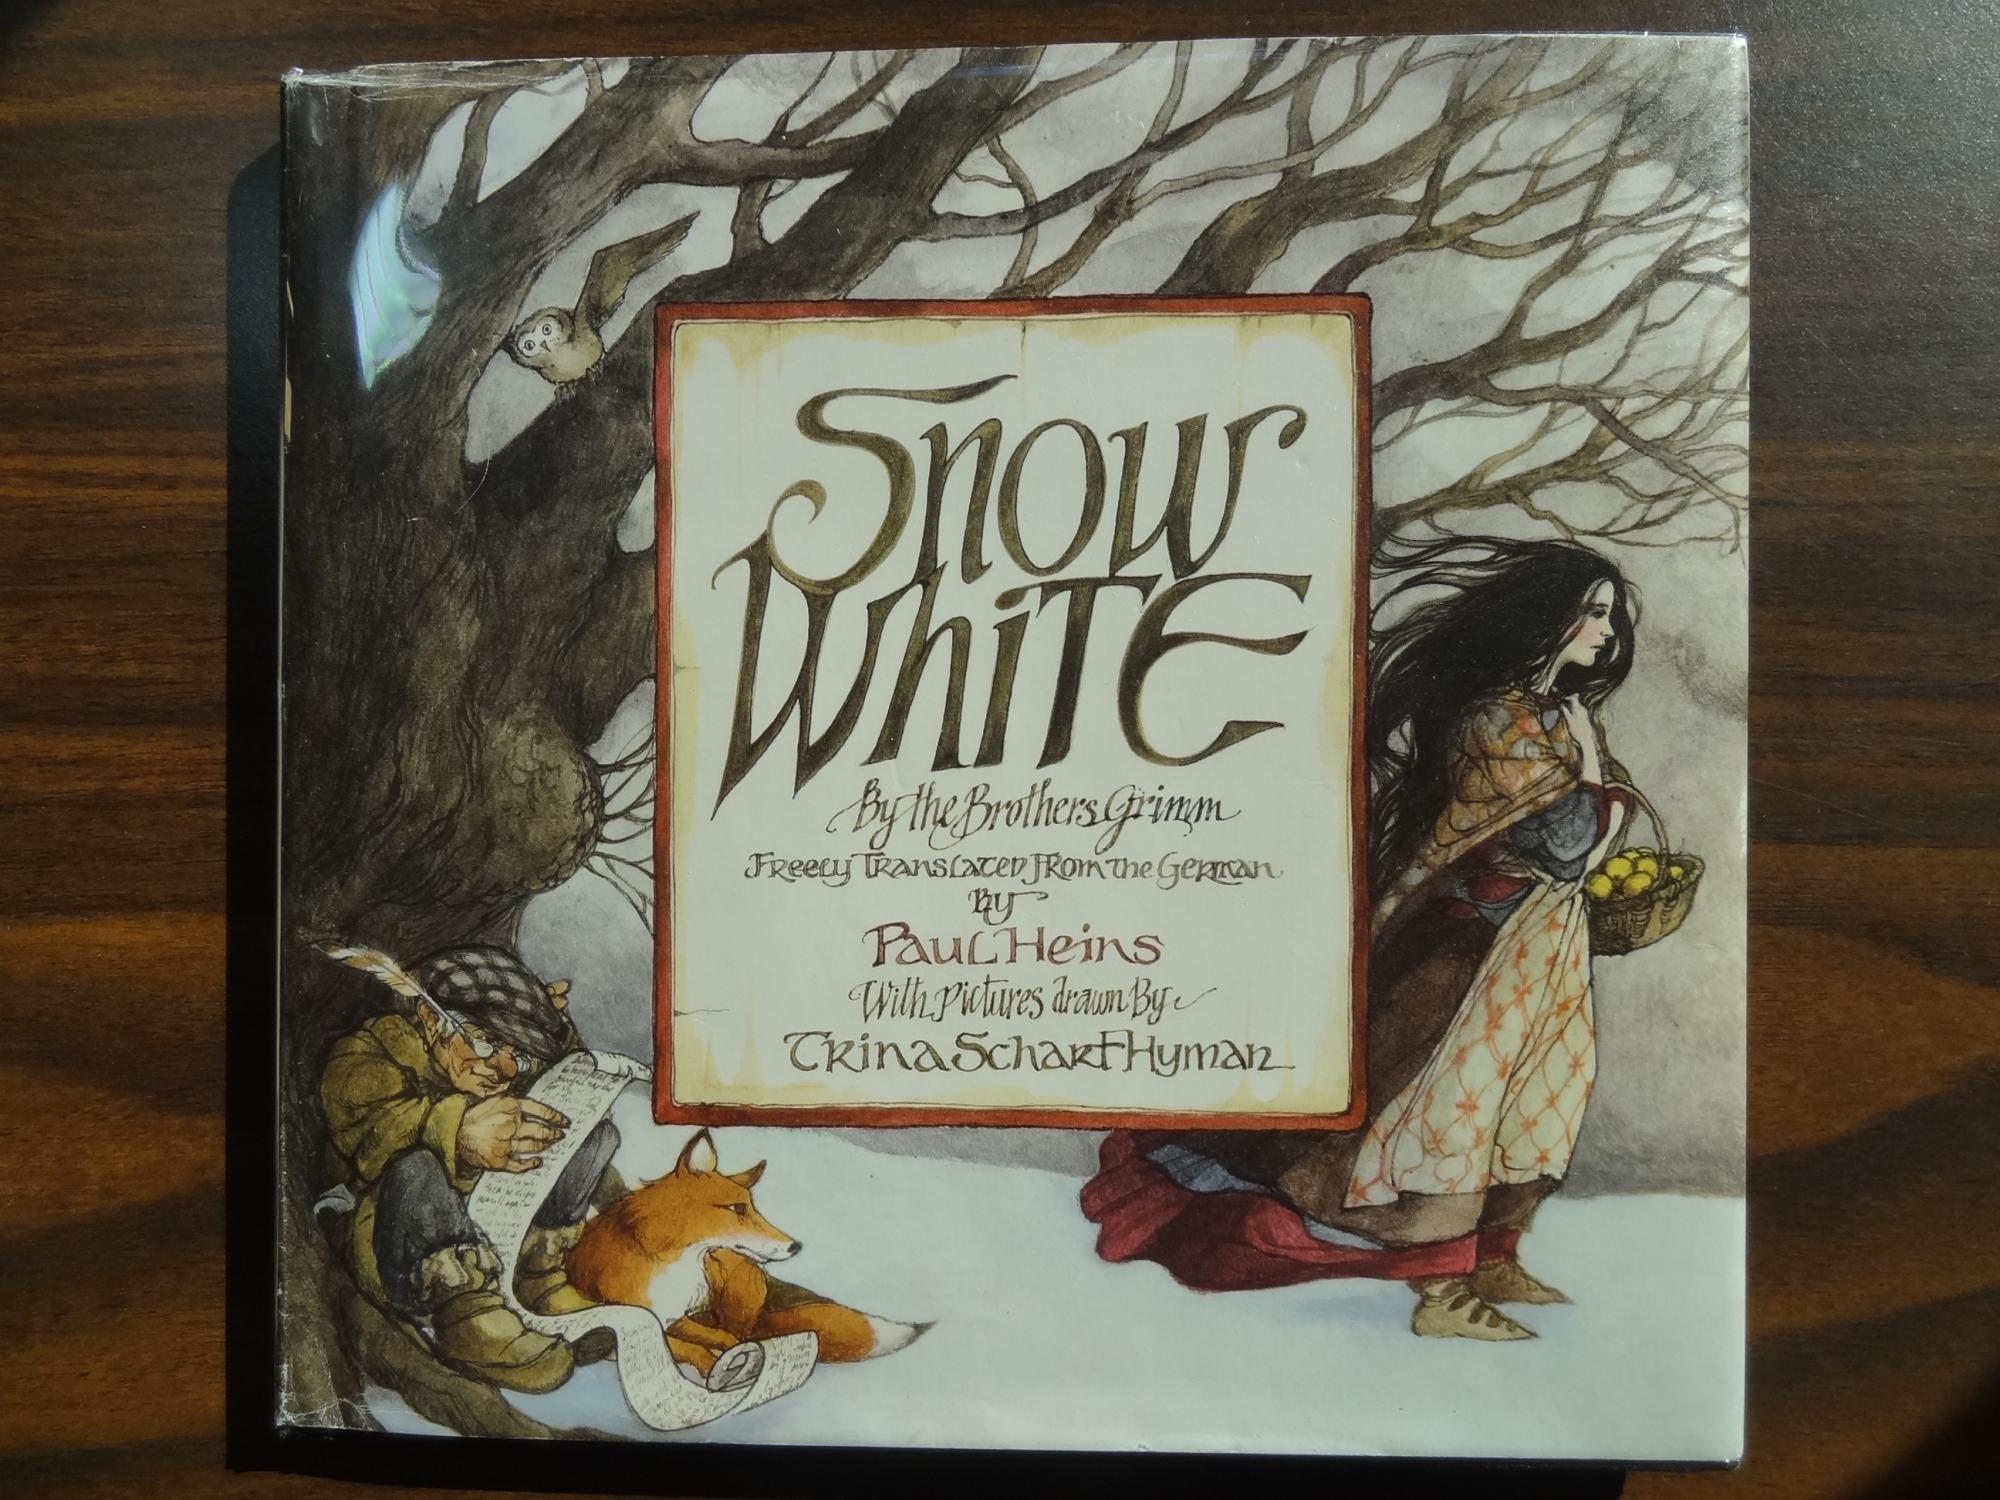 Snow White Book Cover : Snow white by brothers grimm heins paul hyman trina